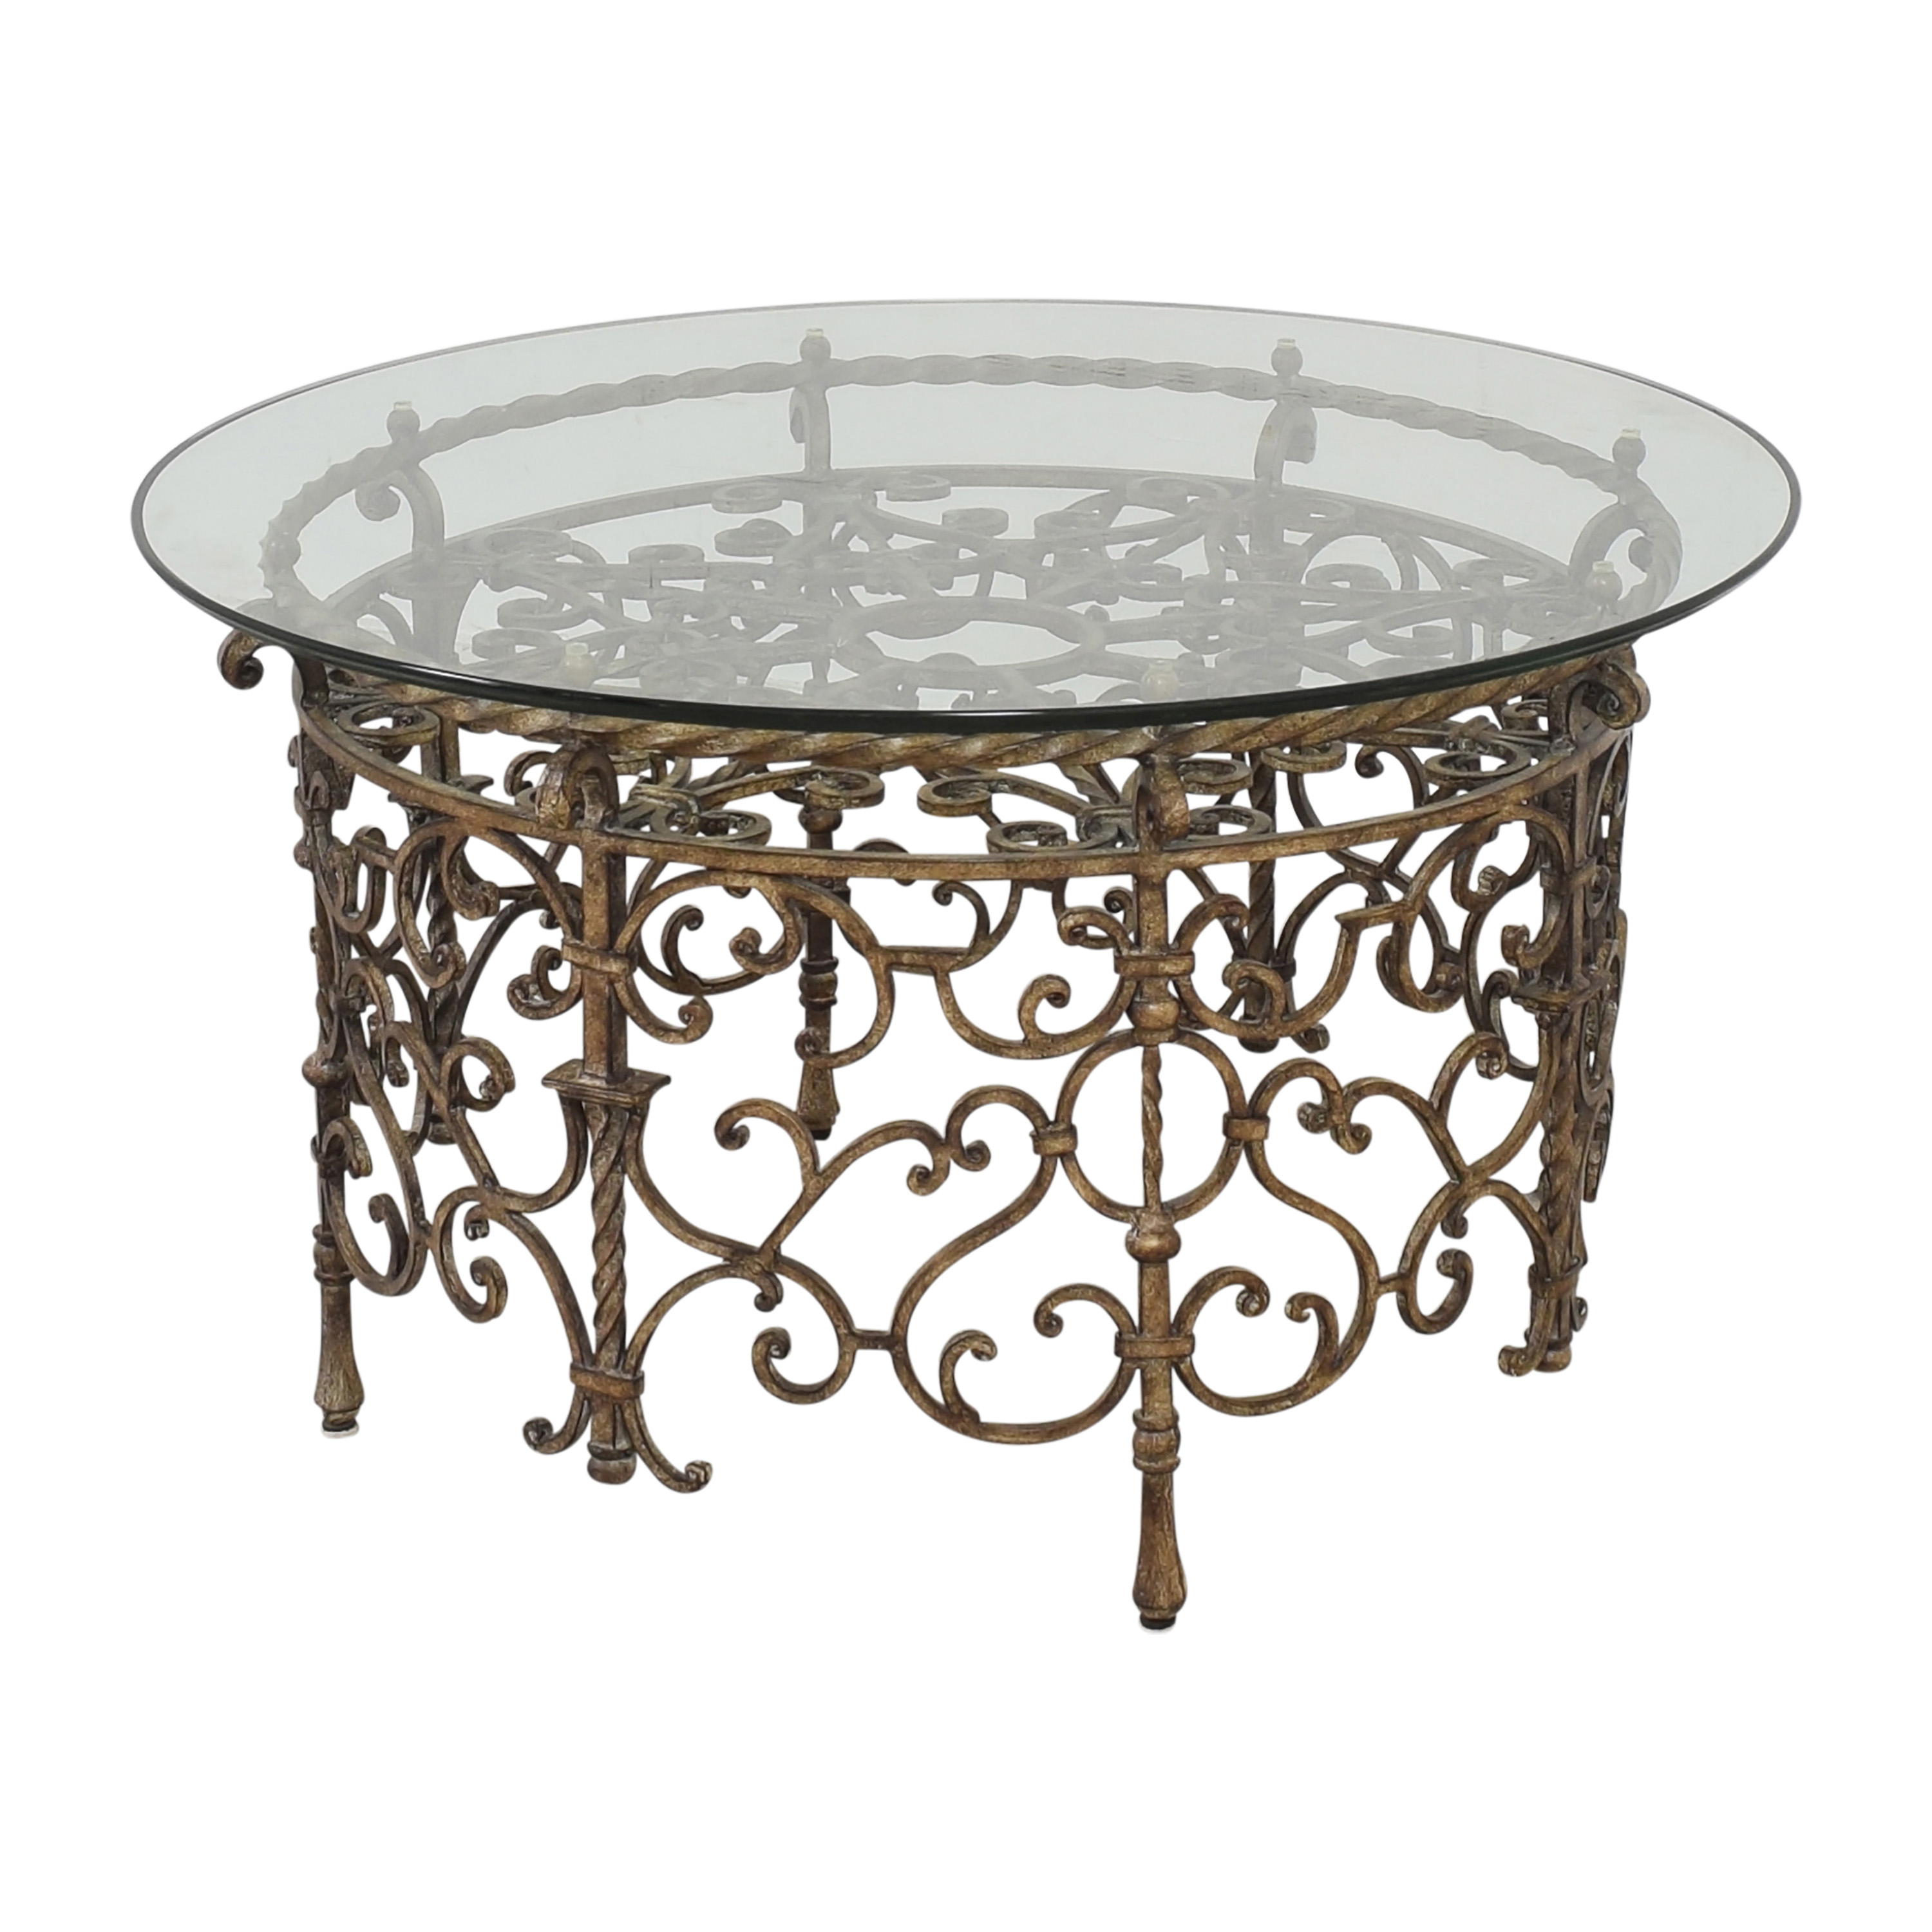 Horchow Round Transparent Coffee Table / Tables